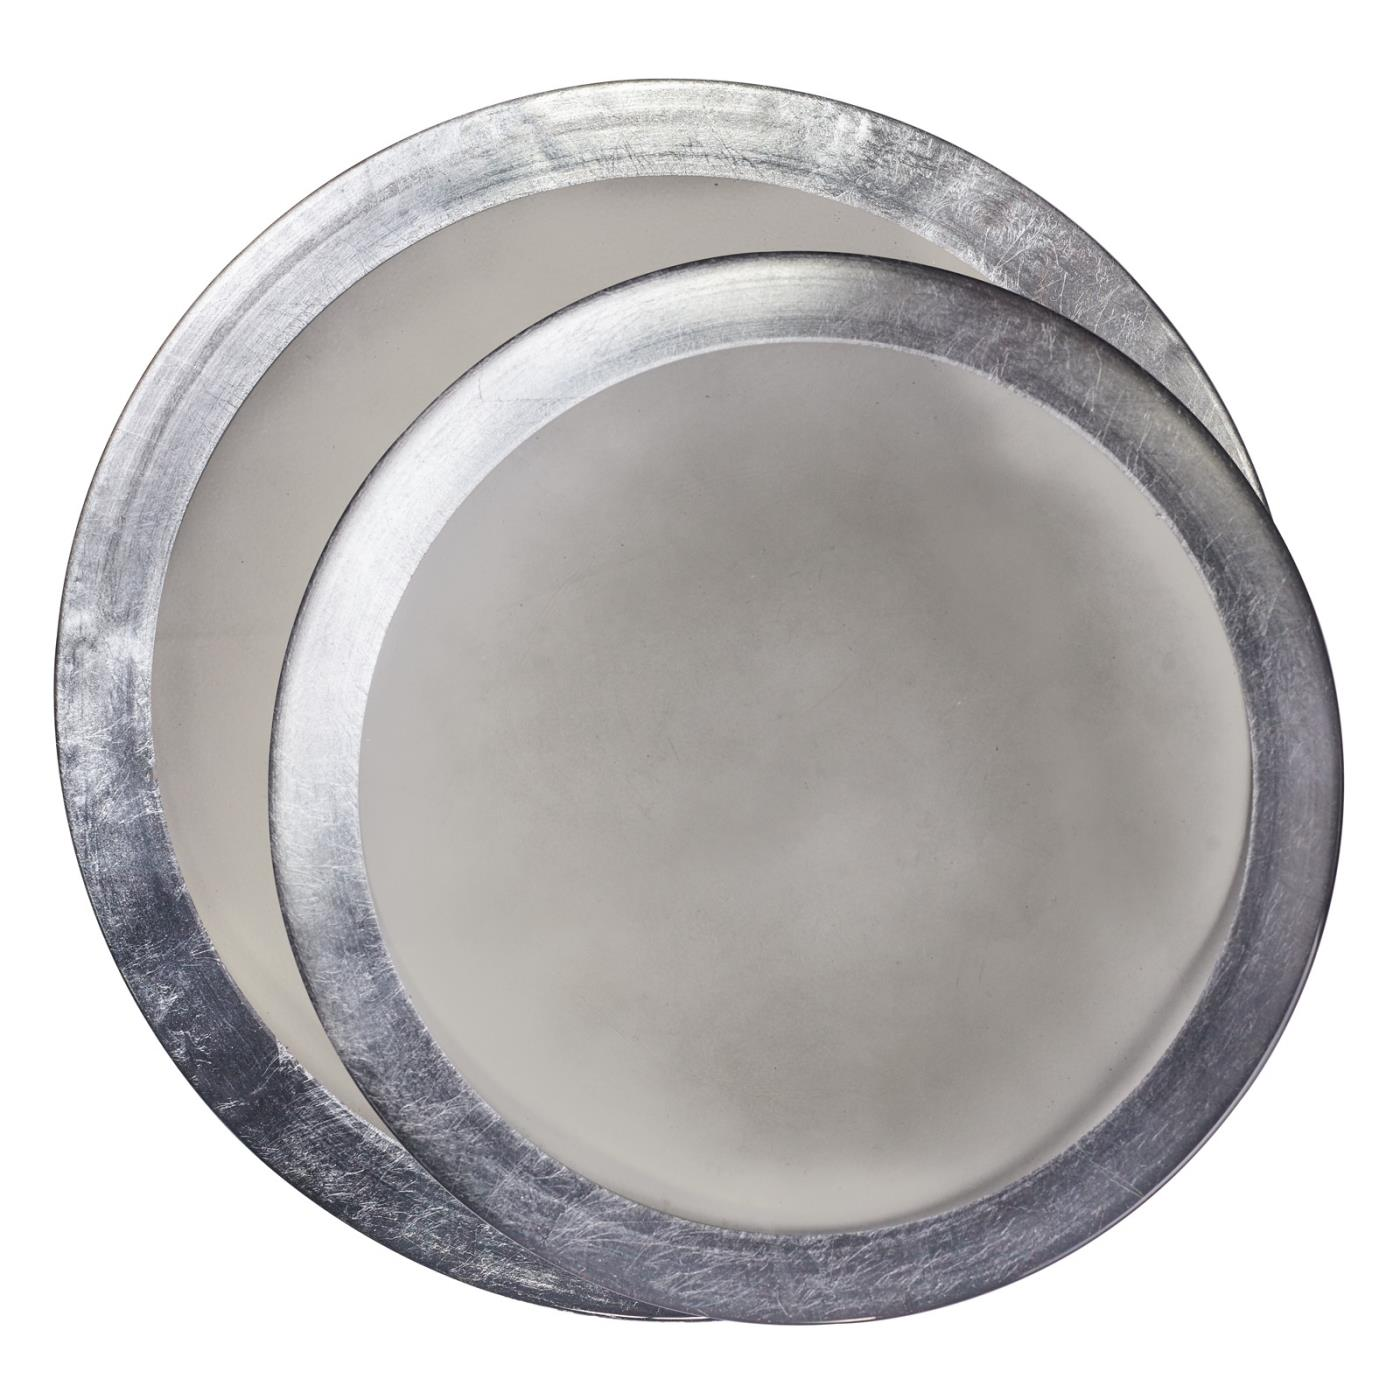 Smoked Luster Glass Charger